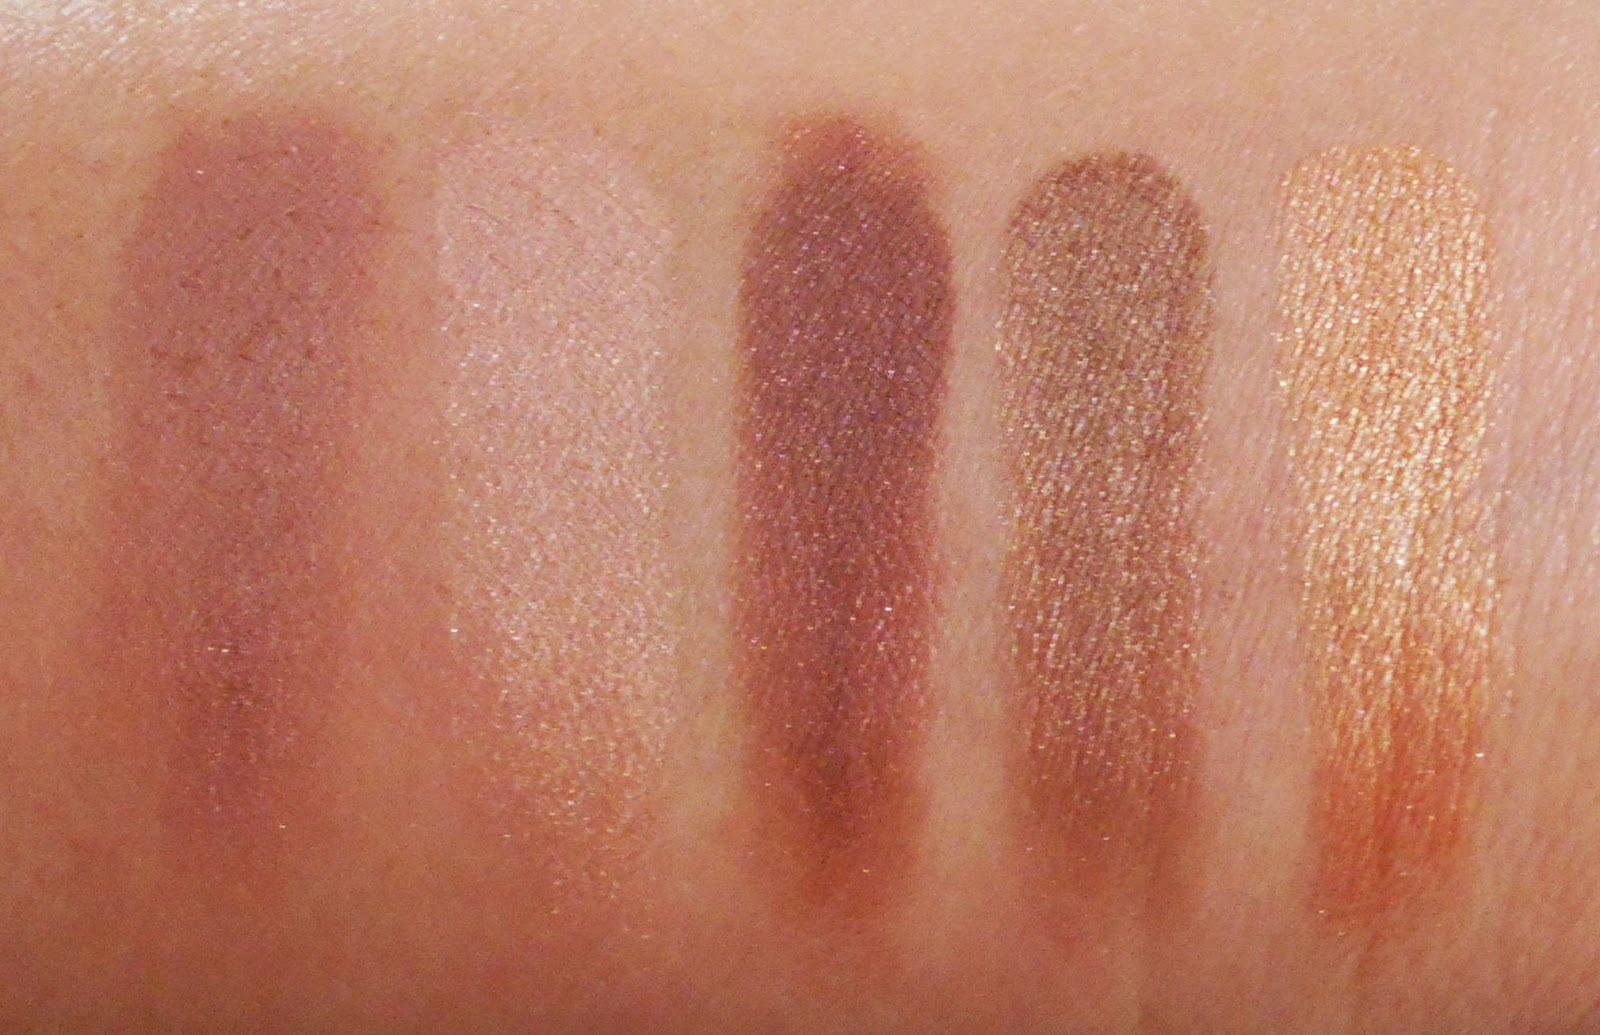 Wet n Wild Fall 2014 Limited Edition Eyeshadow Palette in Smoke and Melrose